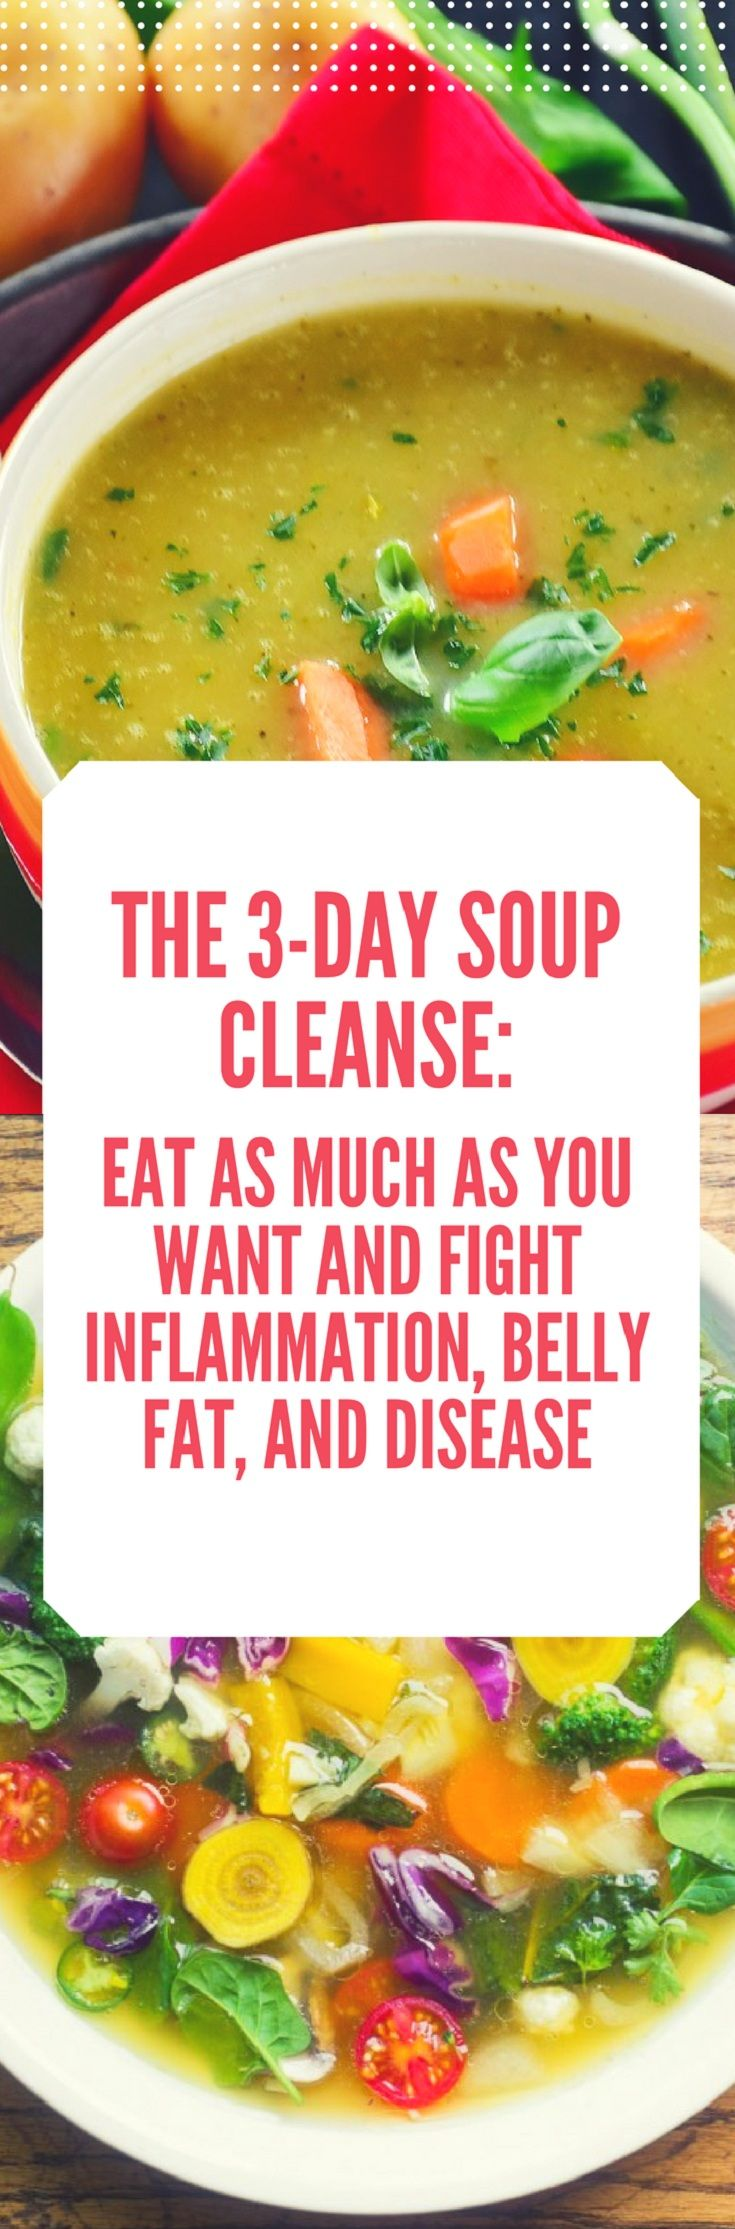 The 3-Day Soup Cleanse: Eat as Much as You Want and Fight Inflammation, Belly Fat, and Disease #soup #cleanse #inflammation #belly #fatloss #disease #cures #health #diy